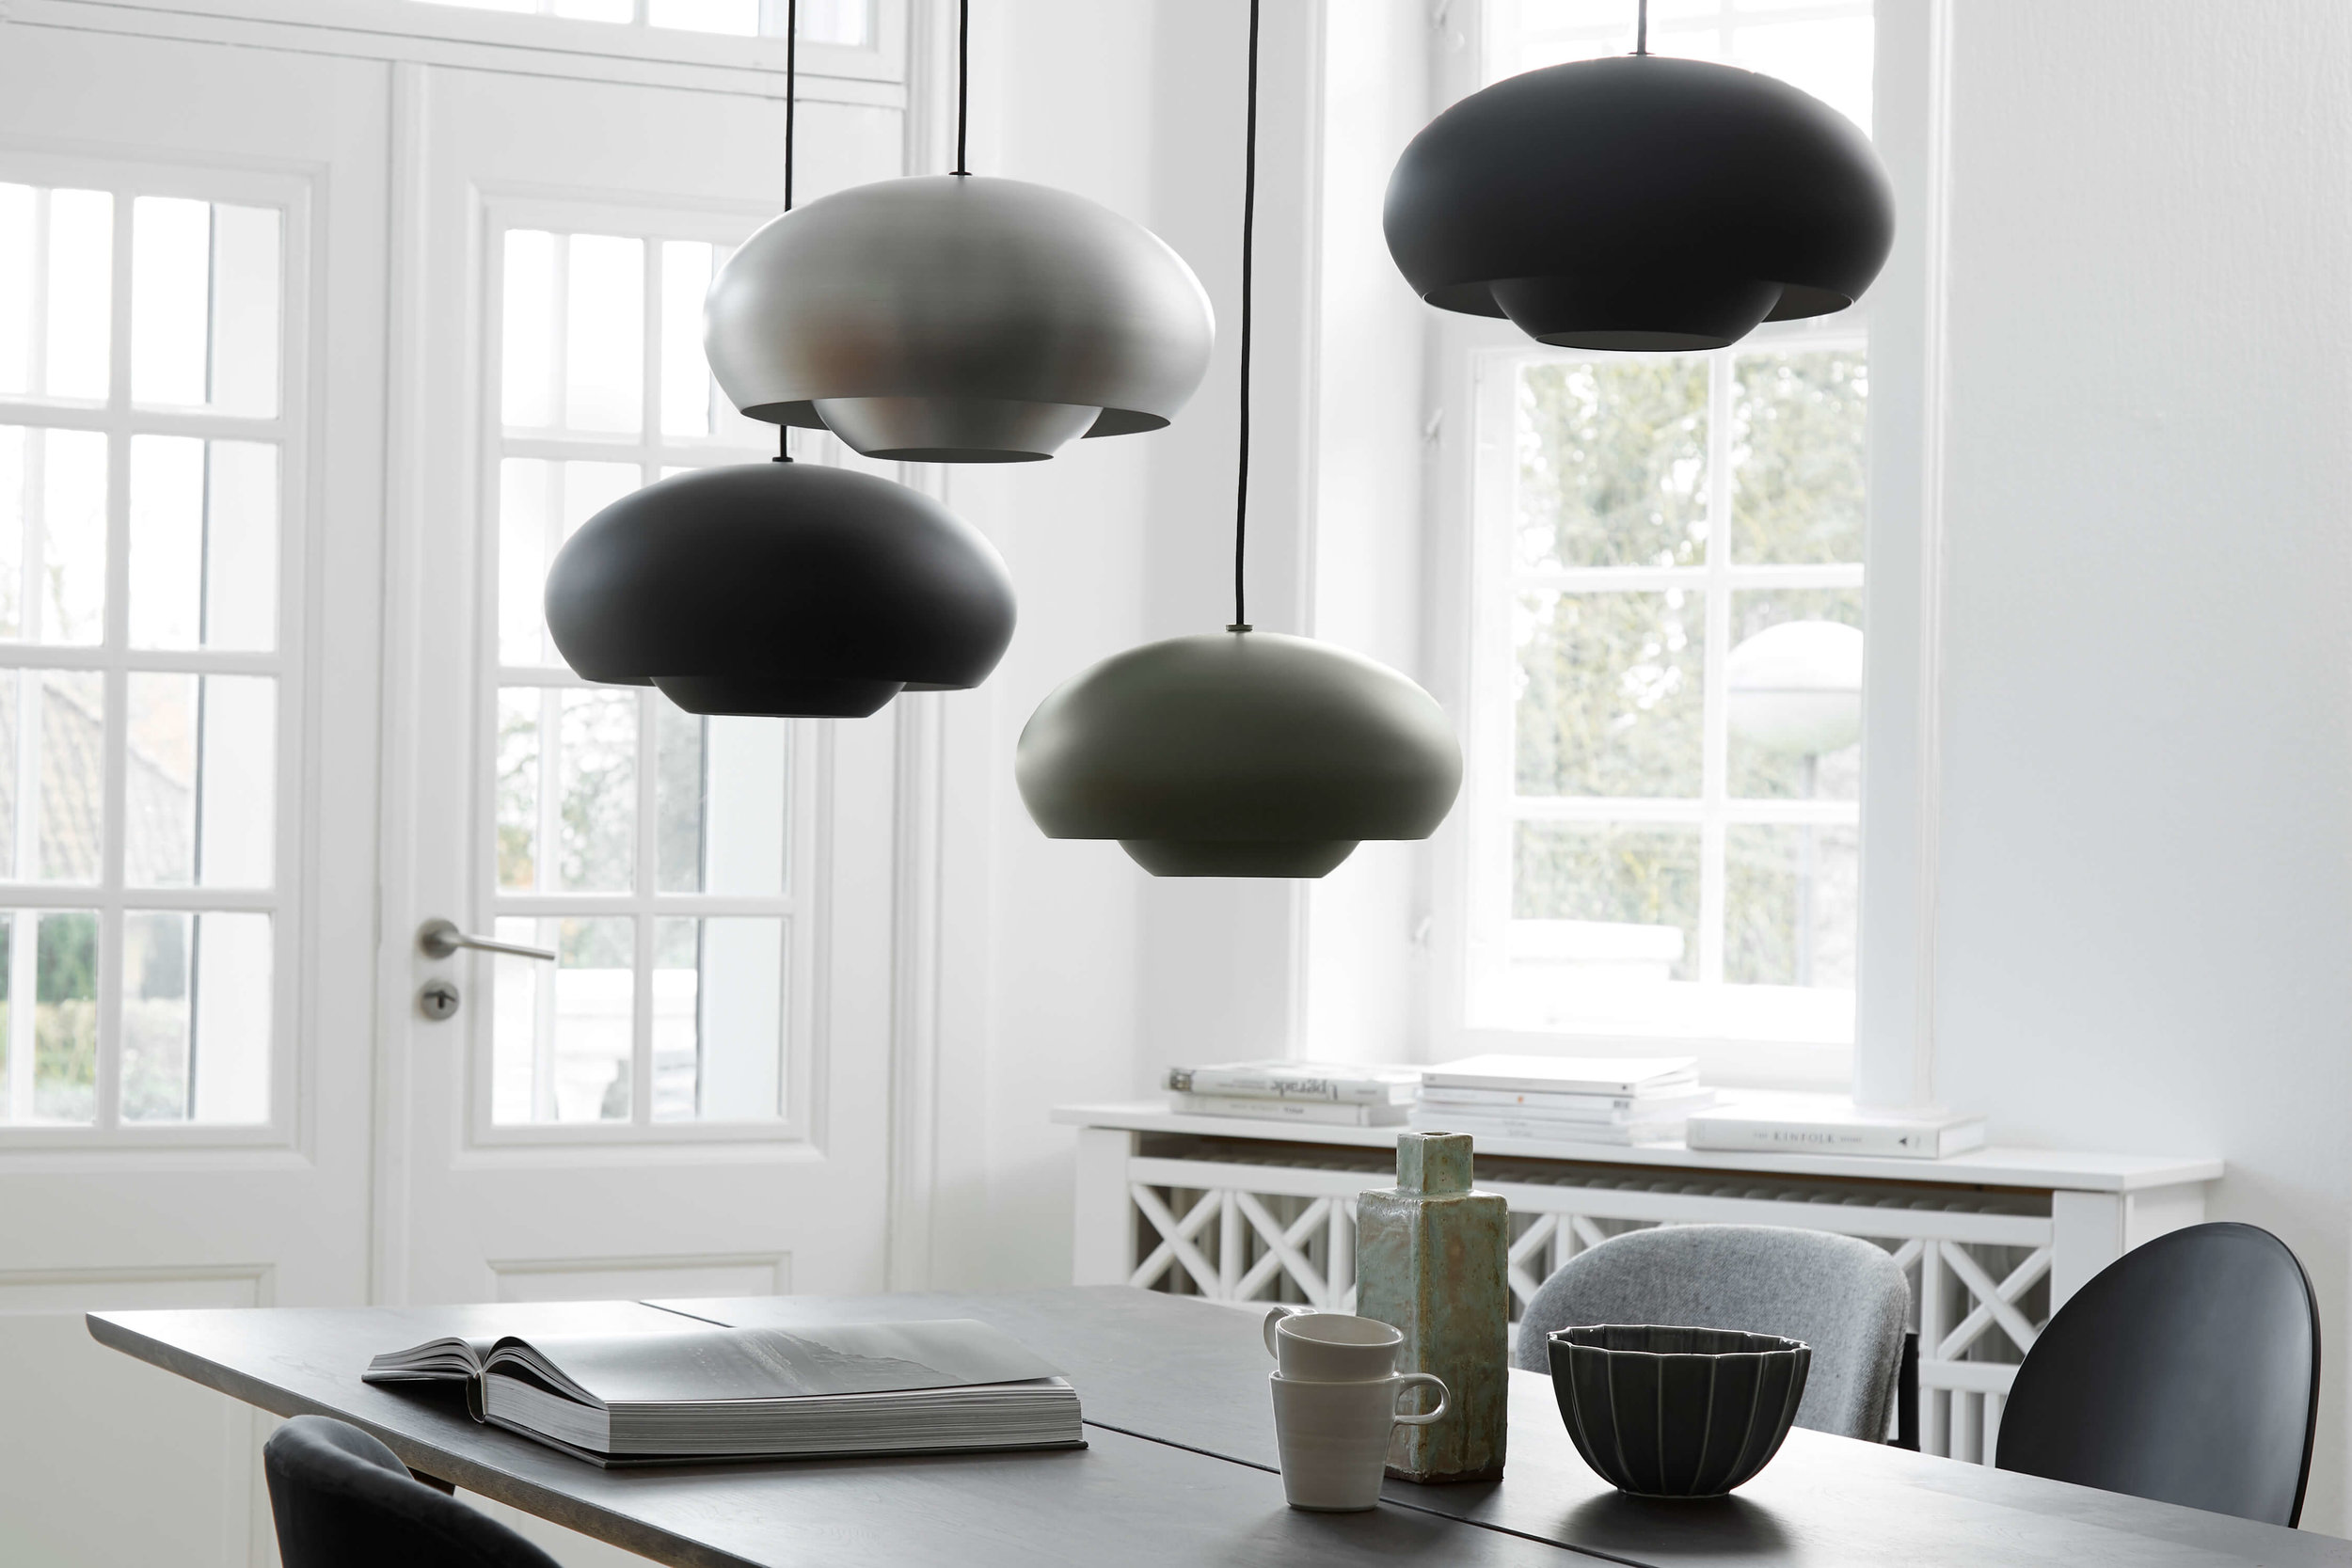 Champ pendant black + green + brushed aluminium - lifestyle Teglgaardsvej 1575+1581.jpg